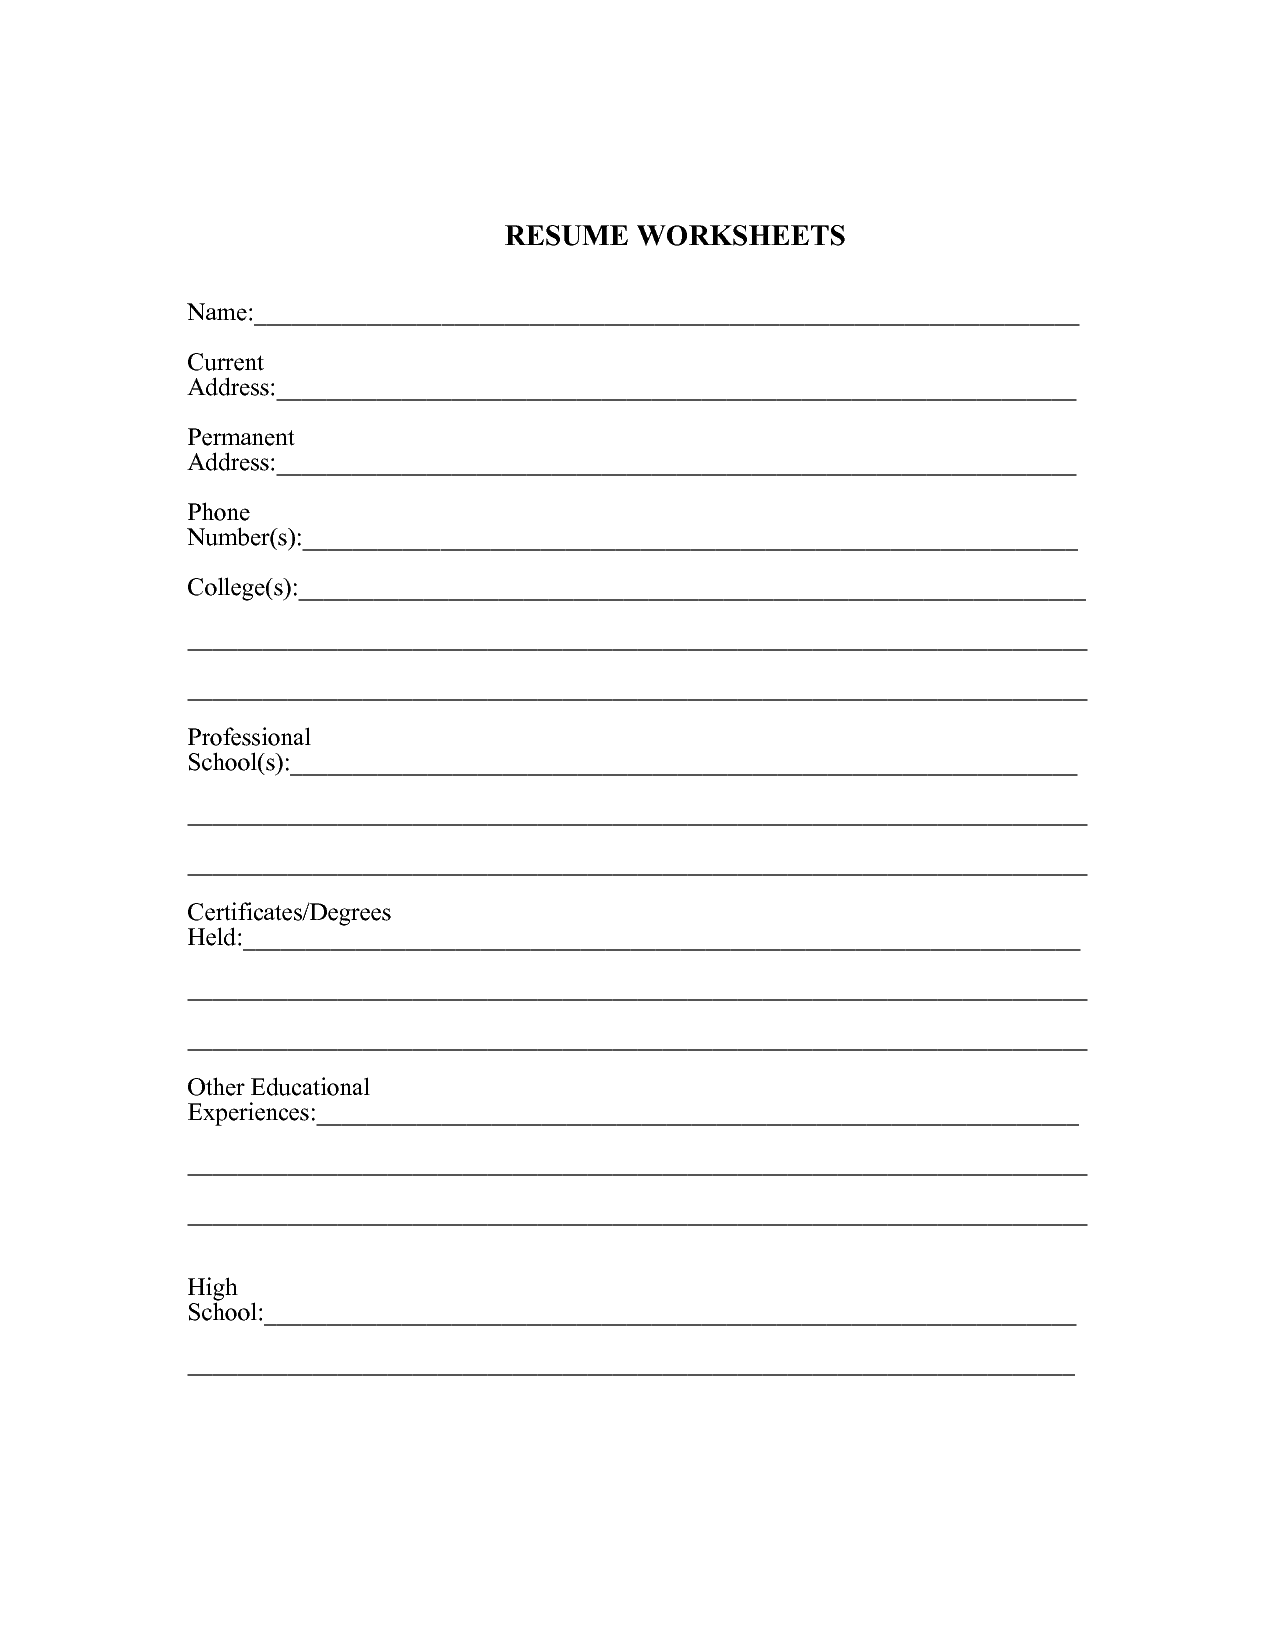 worksheet Career Research Worksheet career research worksheet free worksheets library download and templates worksheets